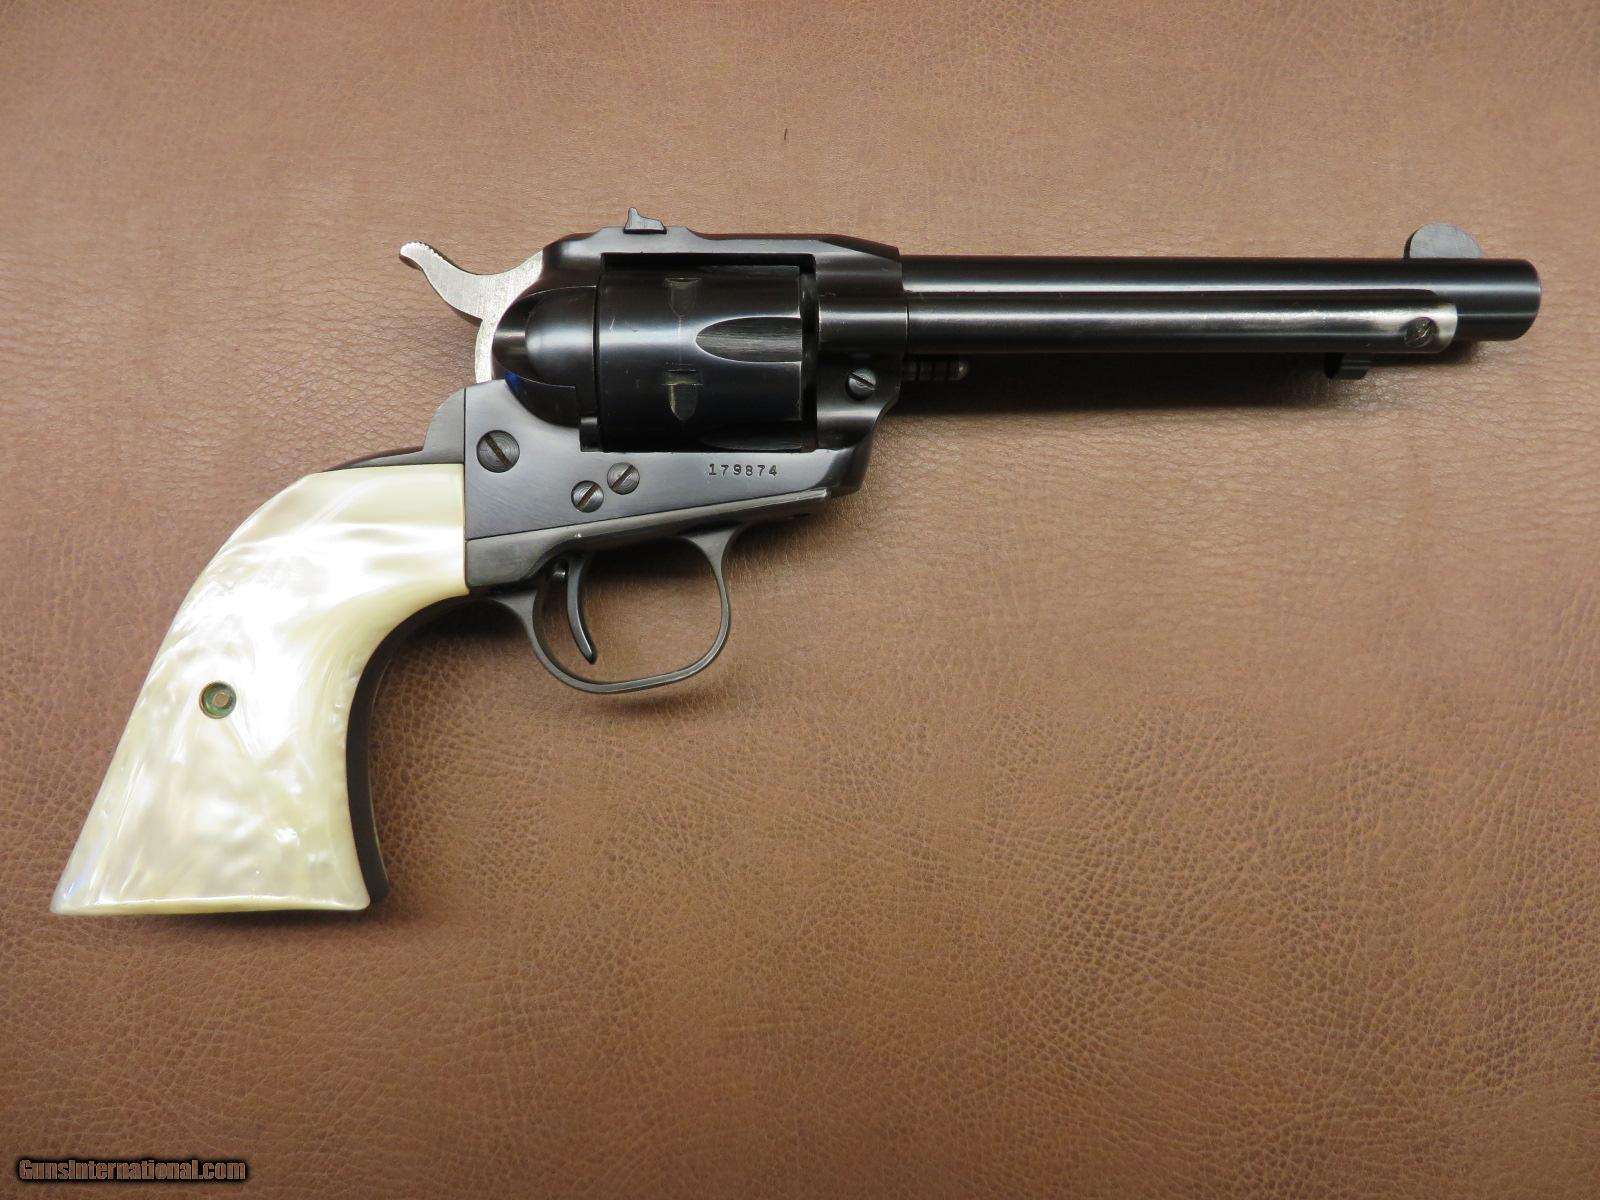 Ruger Announces New Wrangler LR Single-Action Revolver